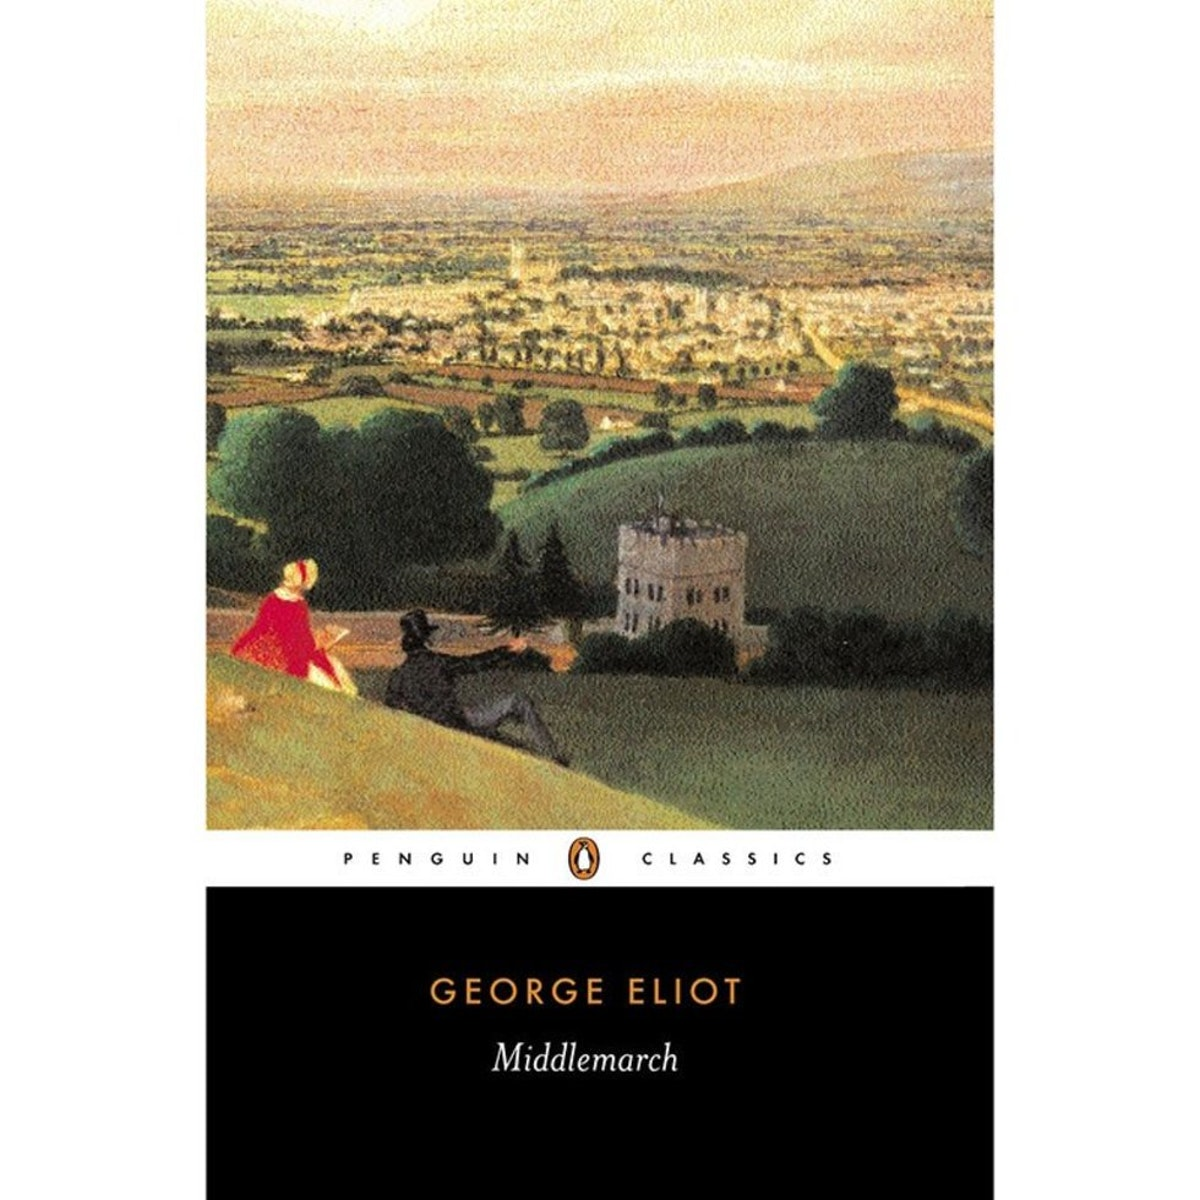 george eliot an intrusive author She is the author of seven novels, including adam bede (1859), the mill on the floss (1860), silas marner (1861), middlemarch (1871–72), and daniel deronda (1876), most of them set in provincial england and known for their realism and psychological insight the icon speaker iconsvg identifies that the.